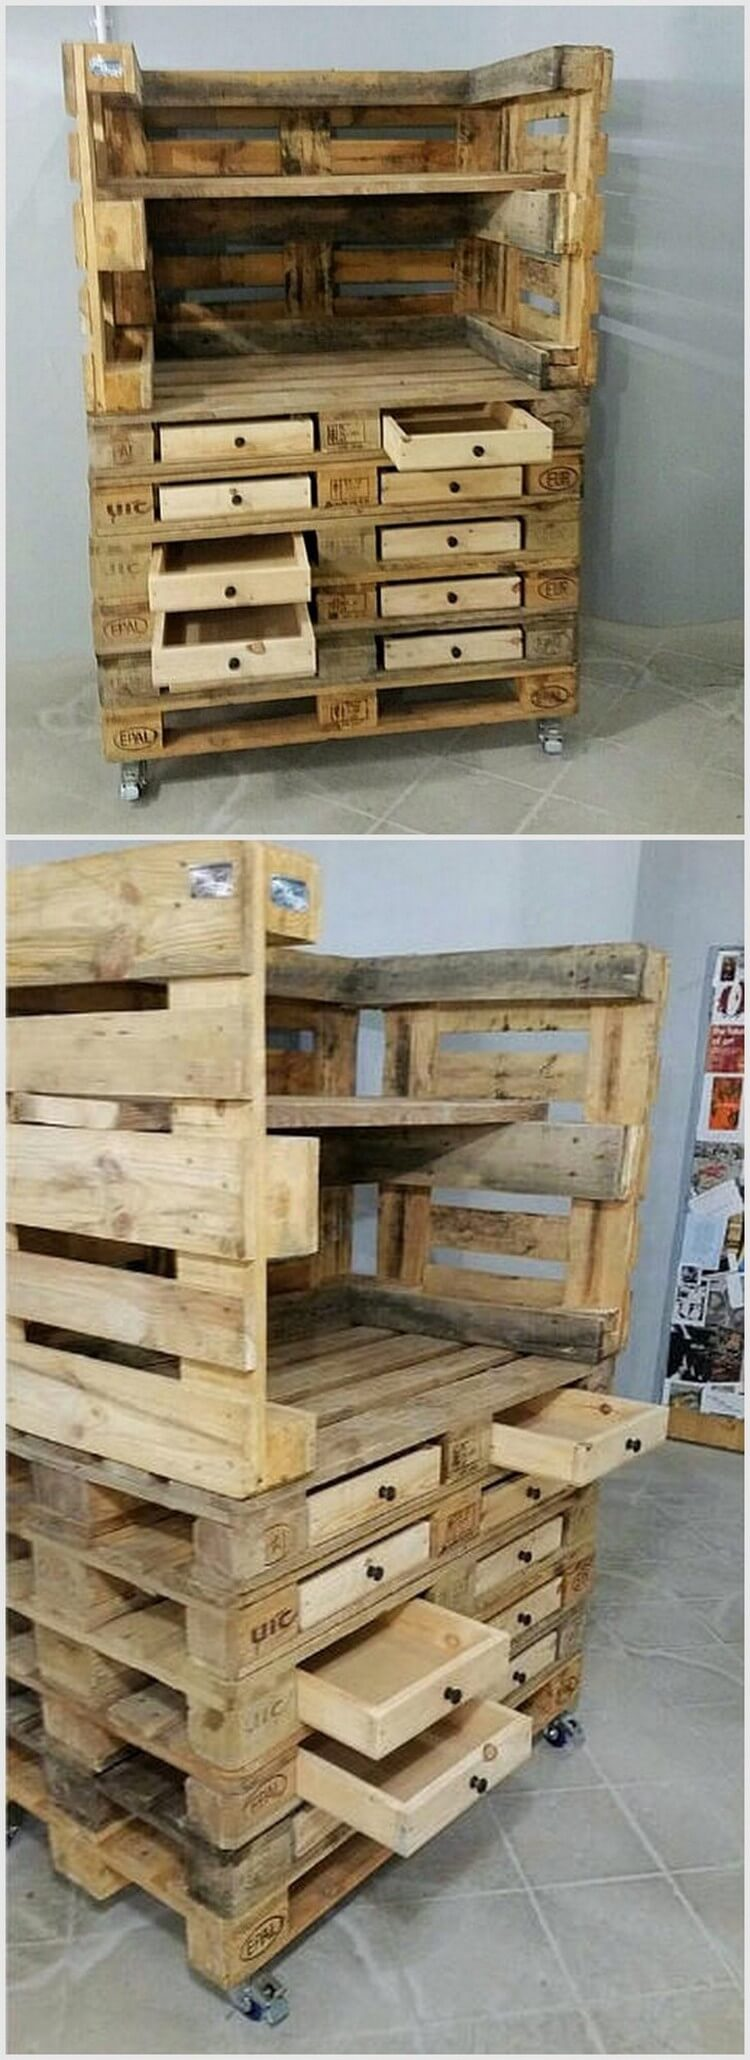 Few ideas about recycling wooden pallets pallet wood for Pallet ideas